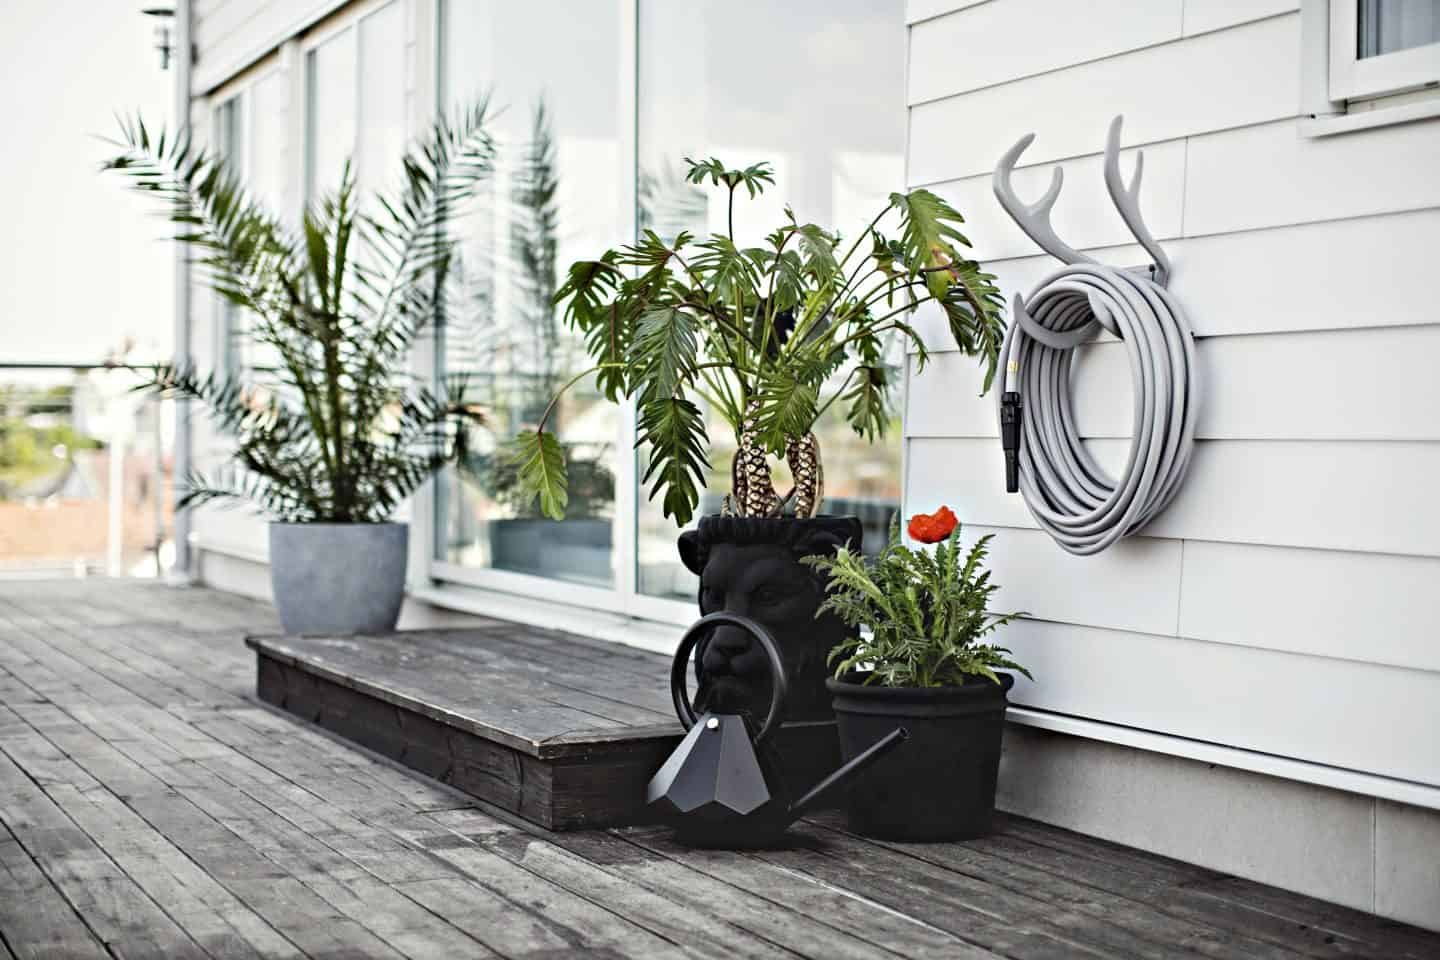 Garden Glory - Stylish garden equipment - grey garden hose wall-mounted on antlers